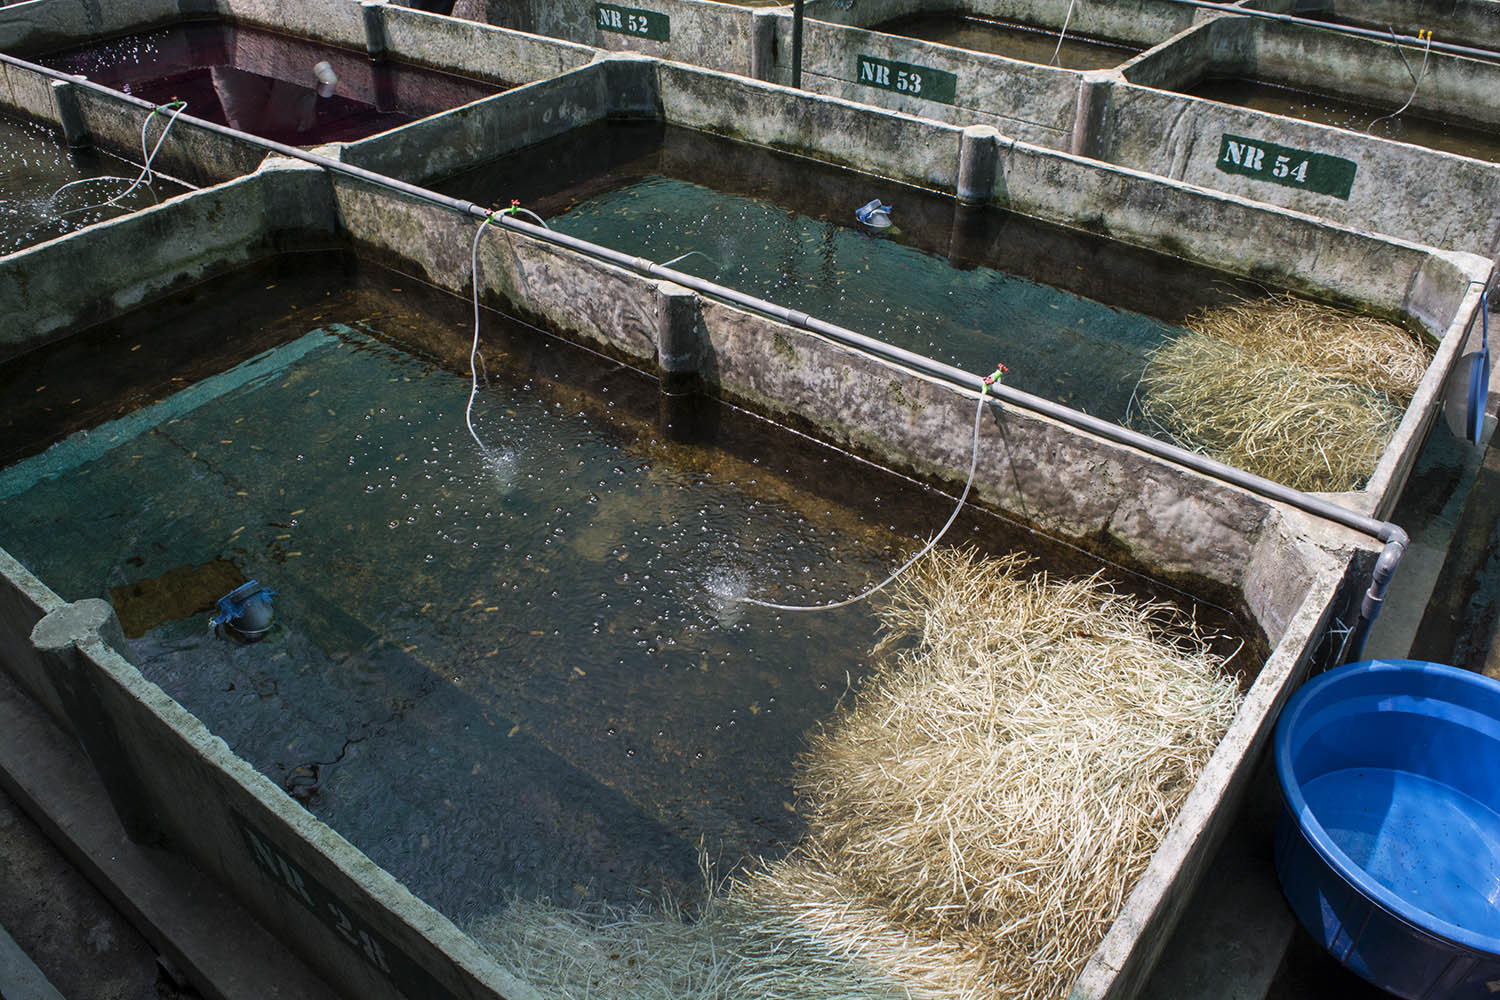 Guppies and other livebearers are among the country's main fish exports. Breeding ponds like this one include fibrous barriers for fry to hide in so they are not eaten by adult fish